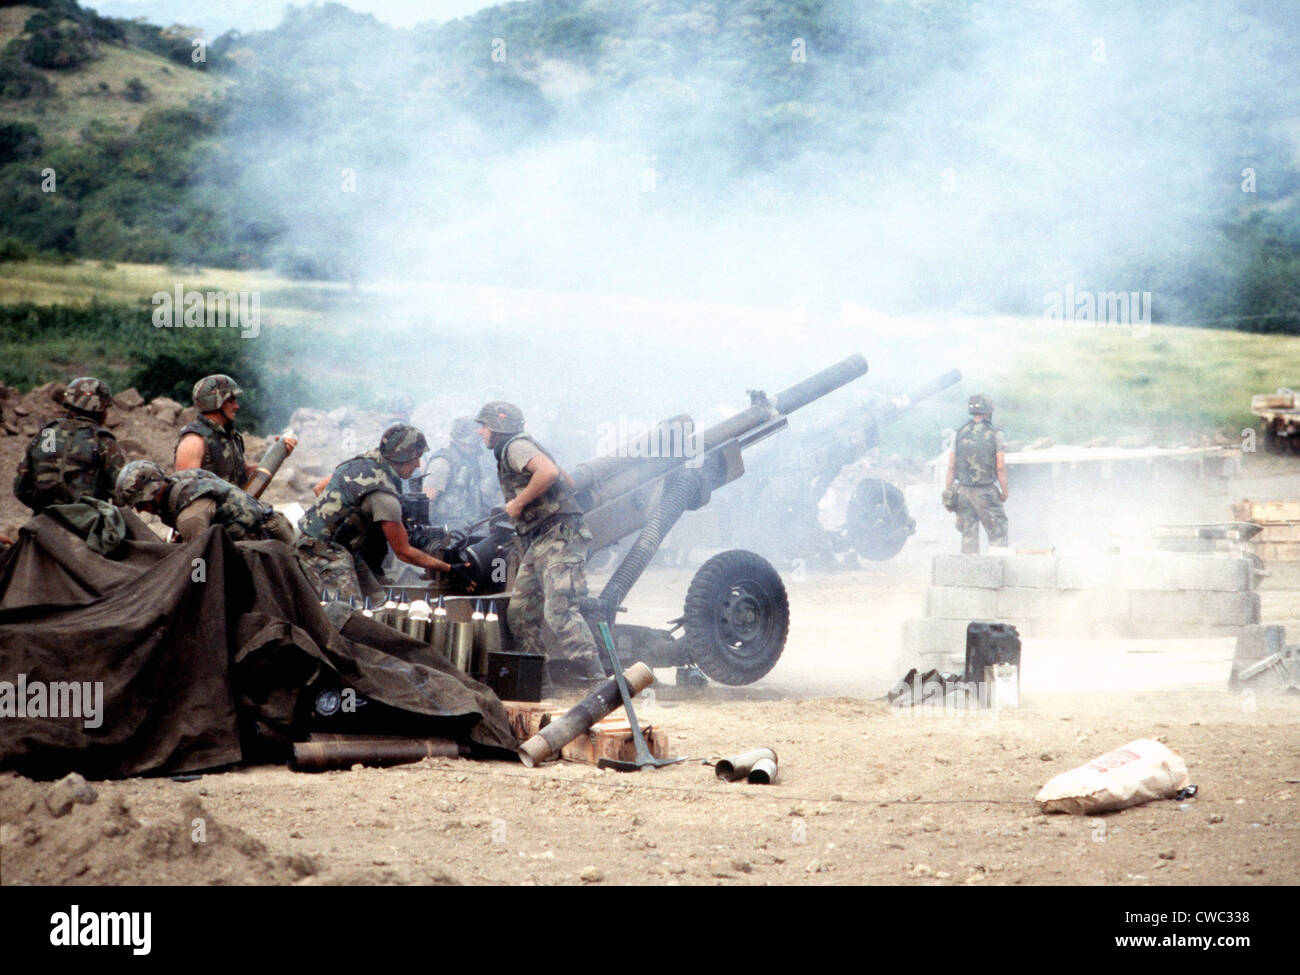 82nd Airborne soldiers fire artillery during the brief of fighting on Grenada which resulted in the death of 45 - Stock Image